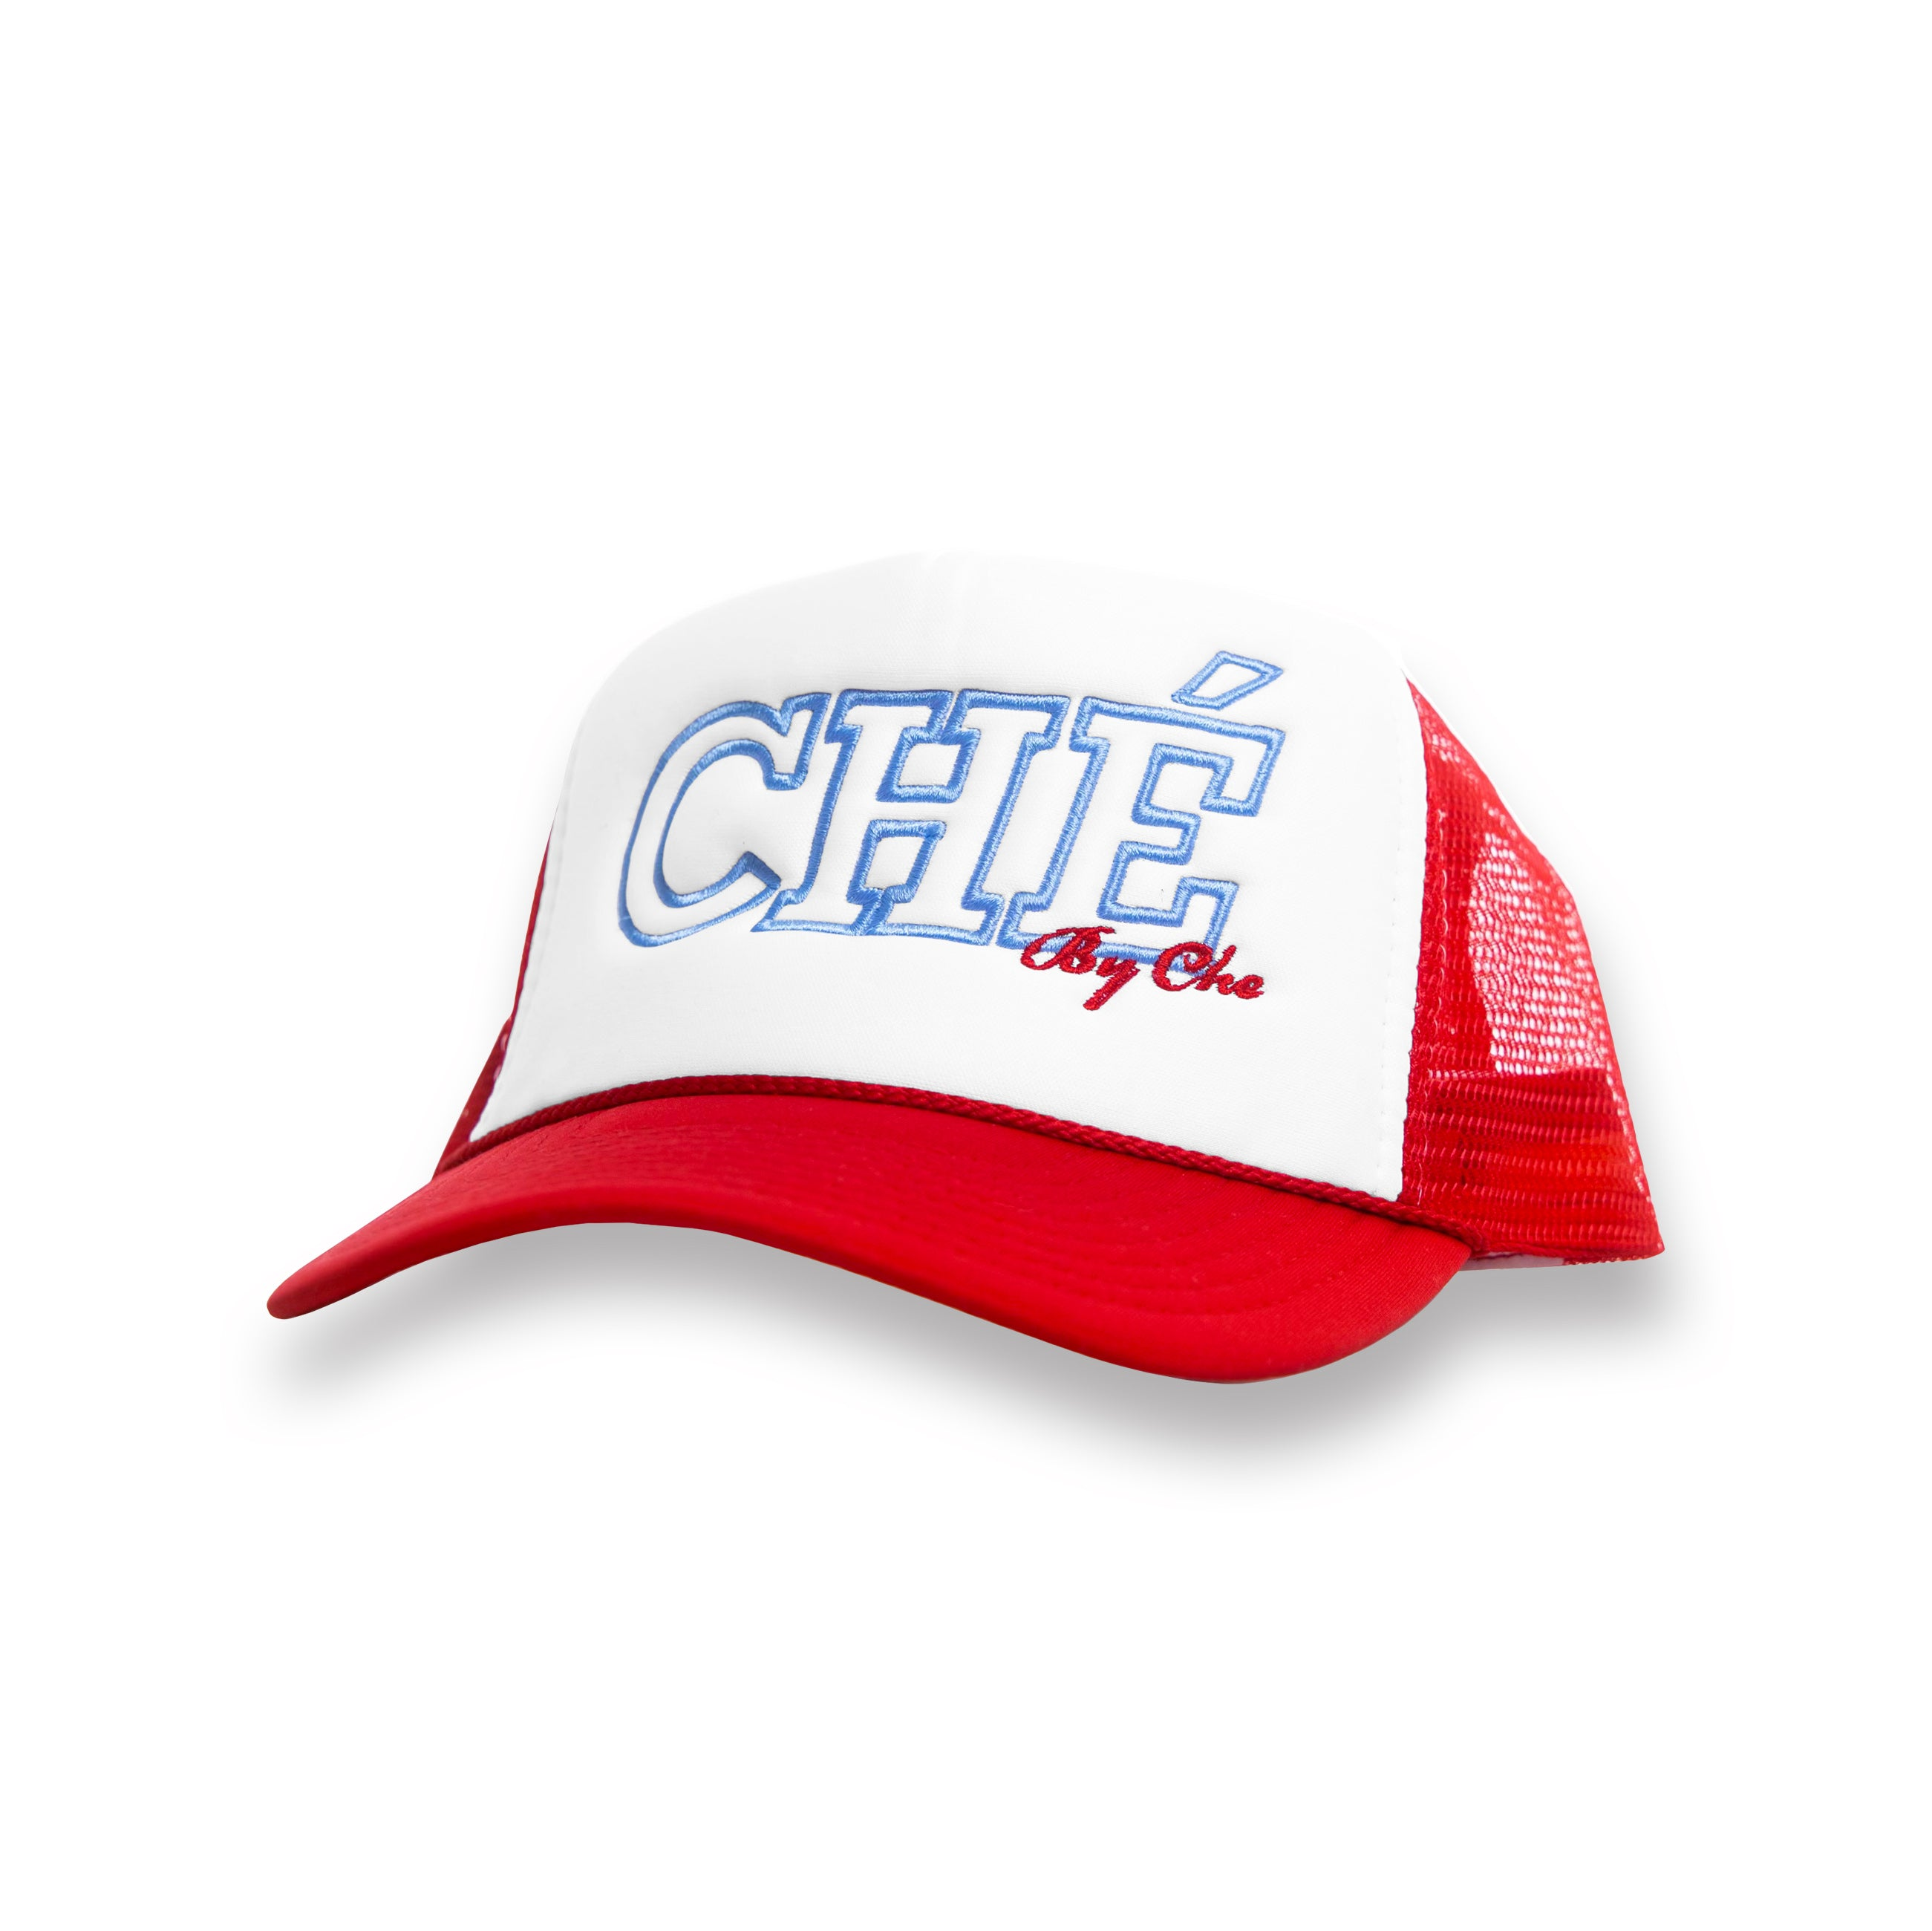 CHÉ BY CHÉ TRUCKER HAT